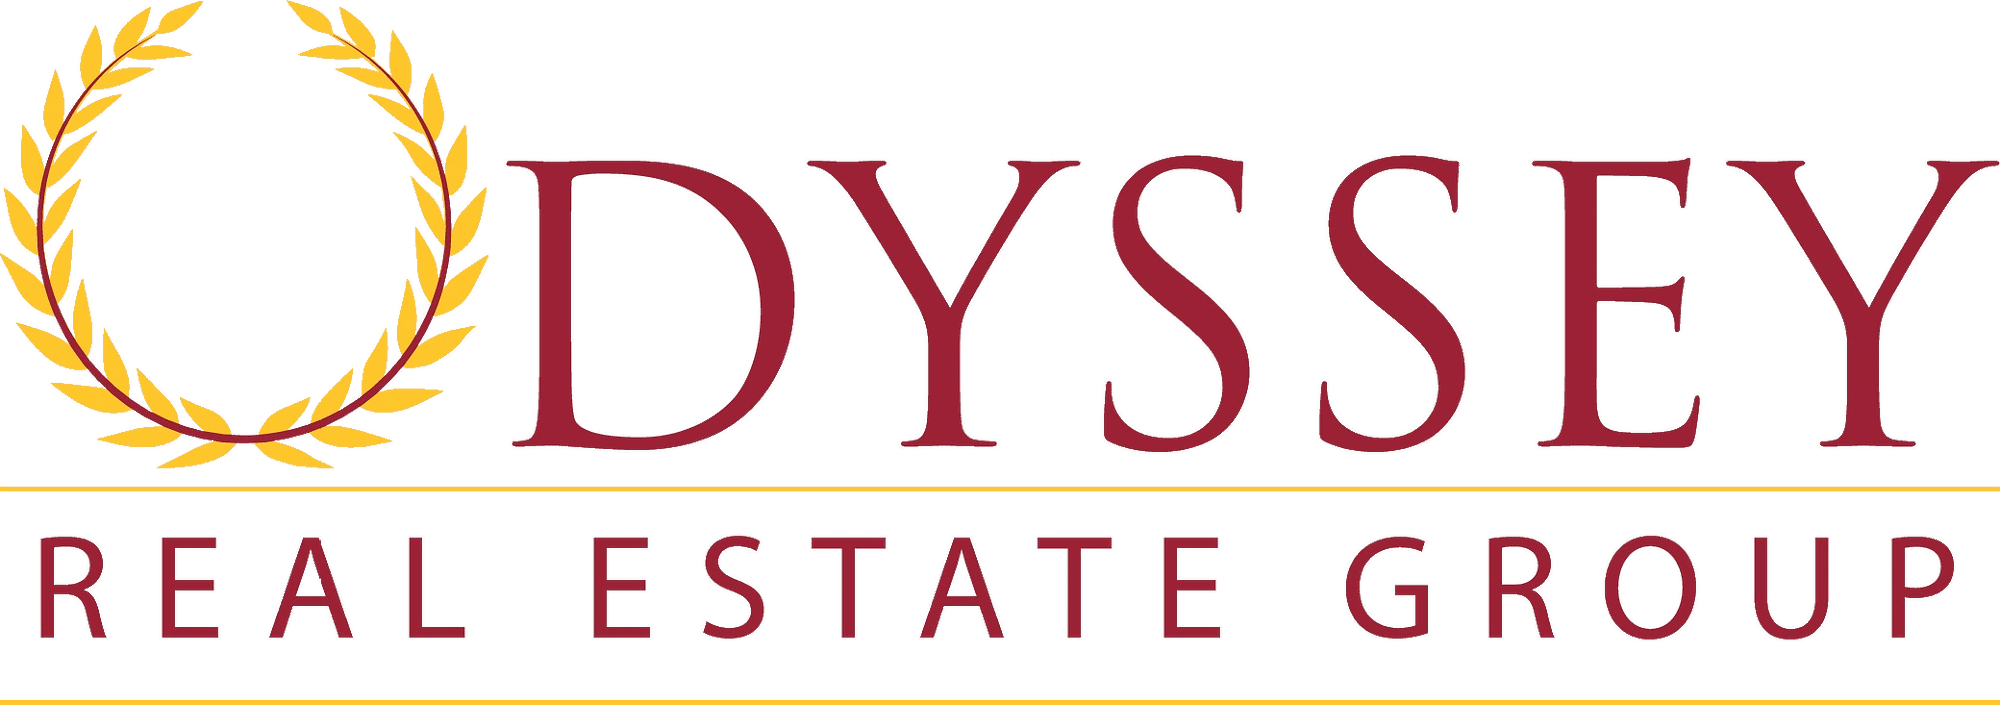 Odyssey Real Estate Group